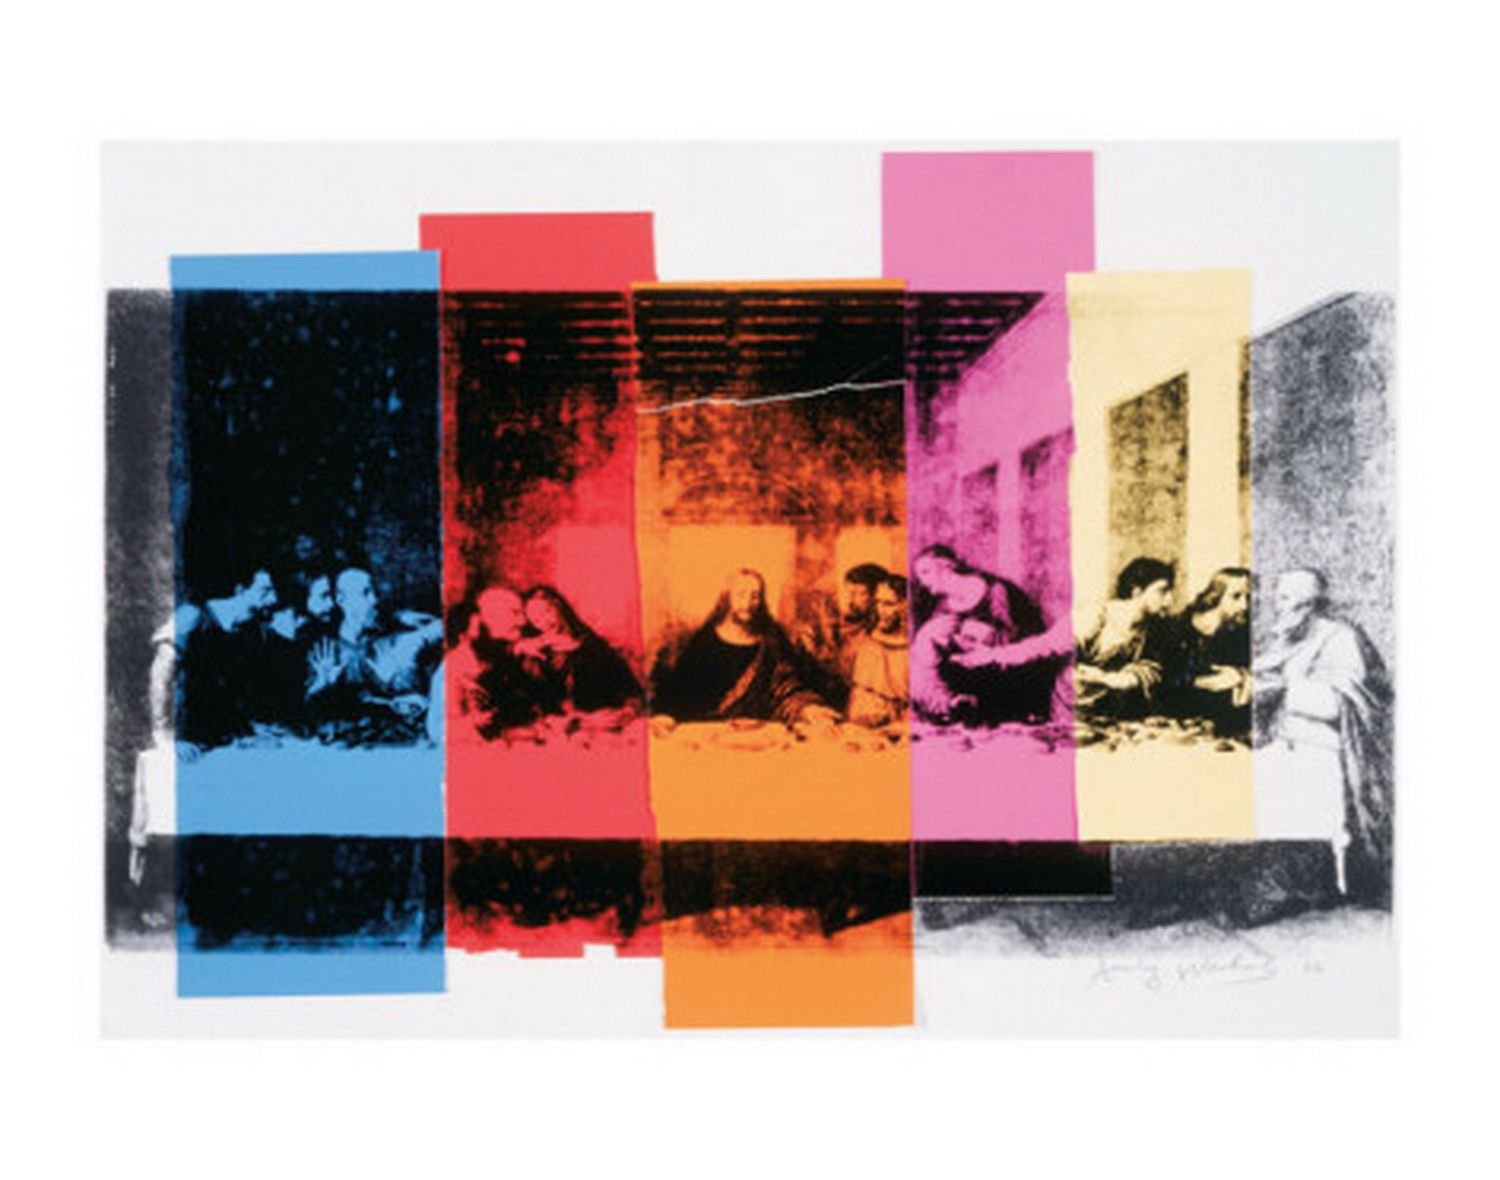 andy warhol detail of the last supper c1986.jpg | Andy Warhol ...